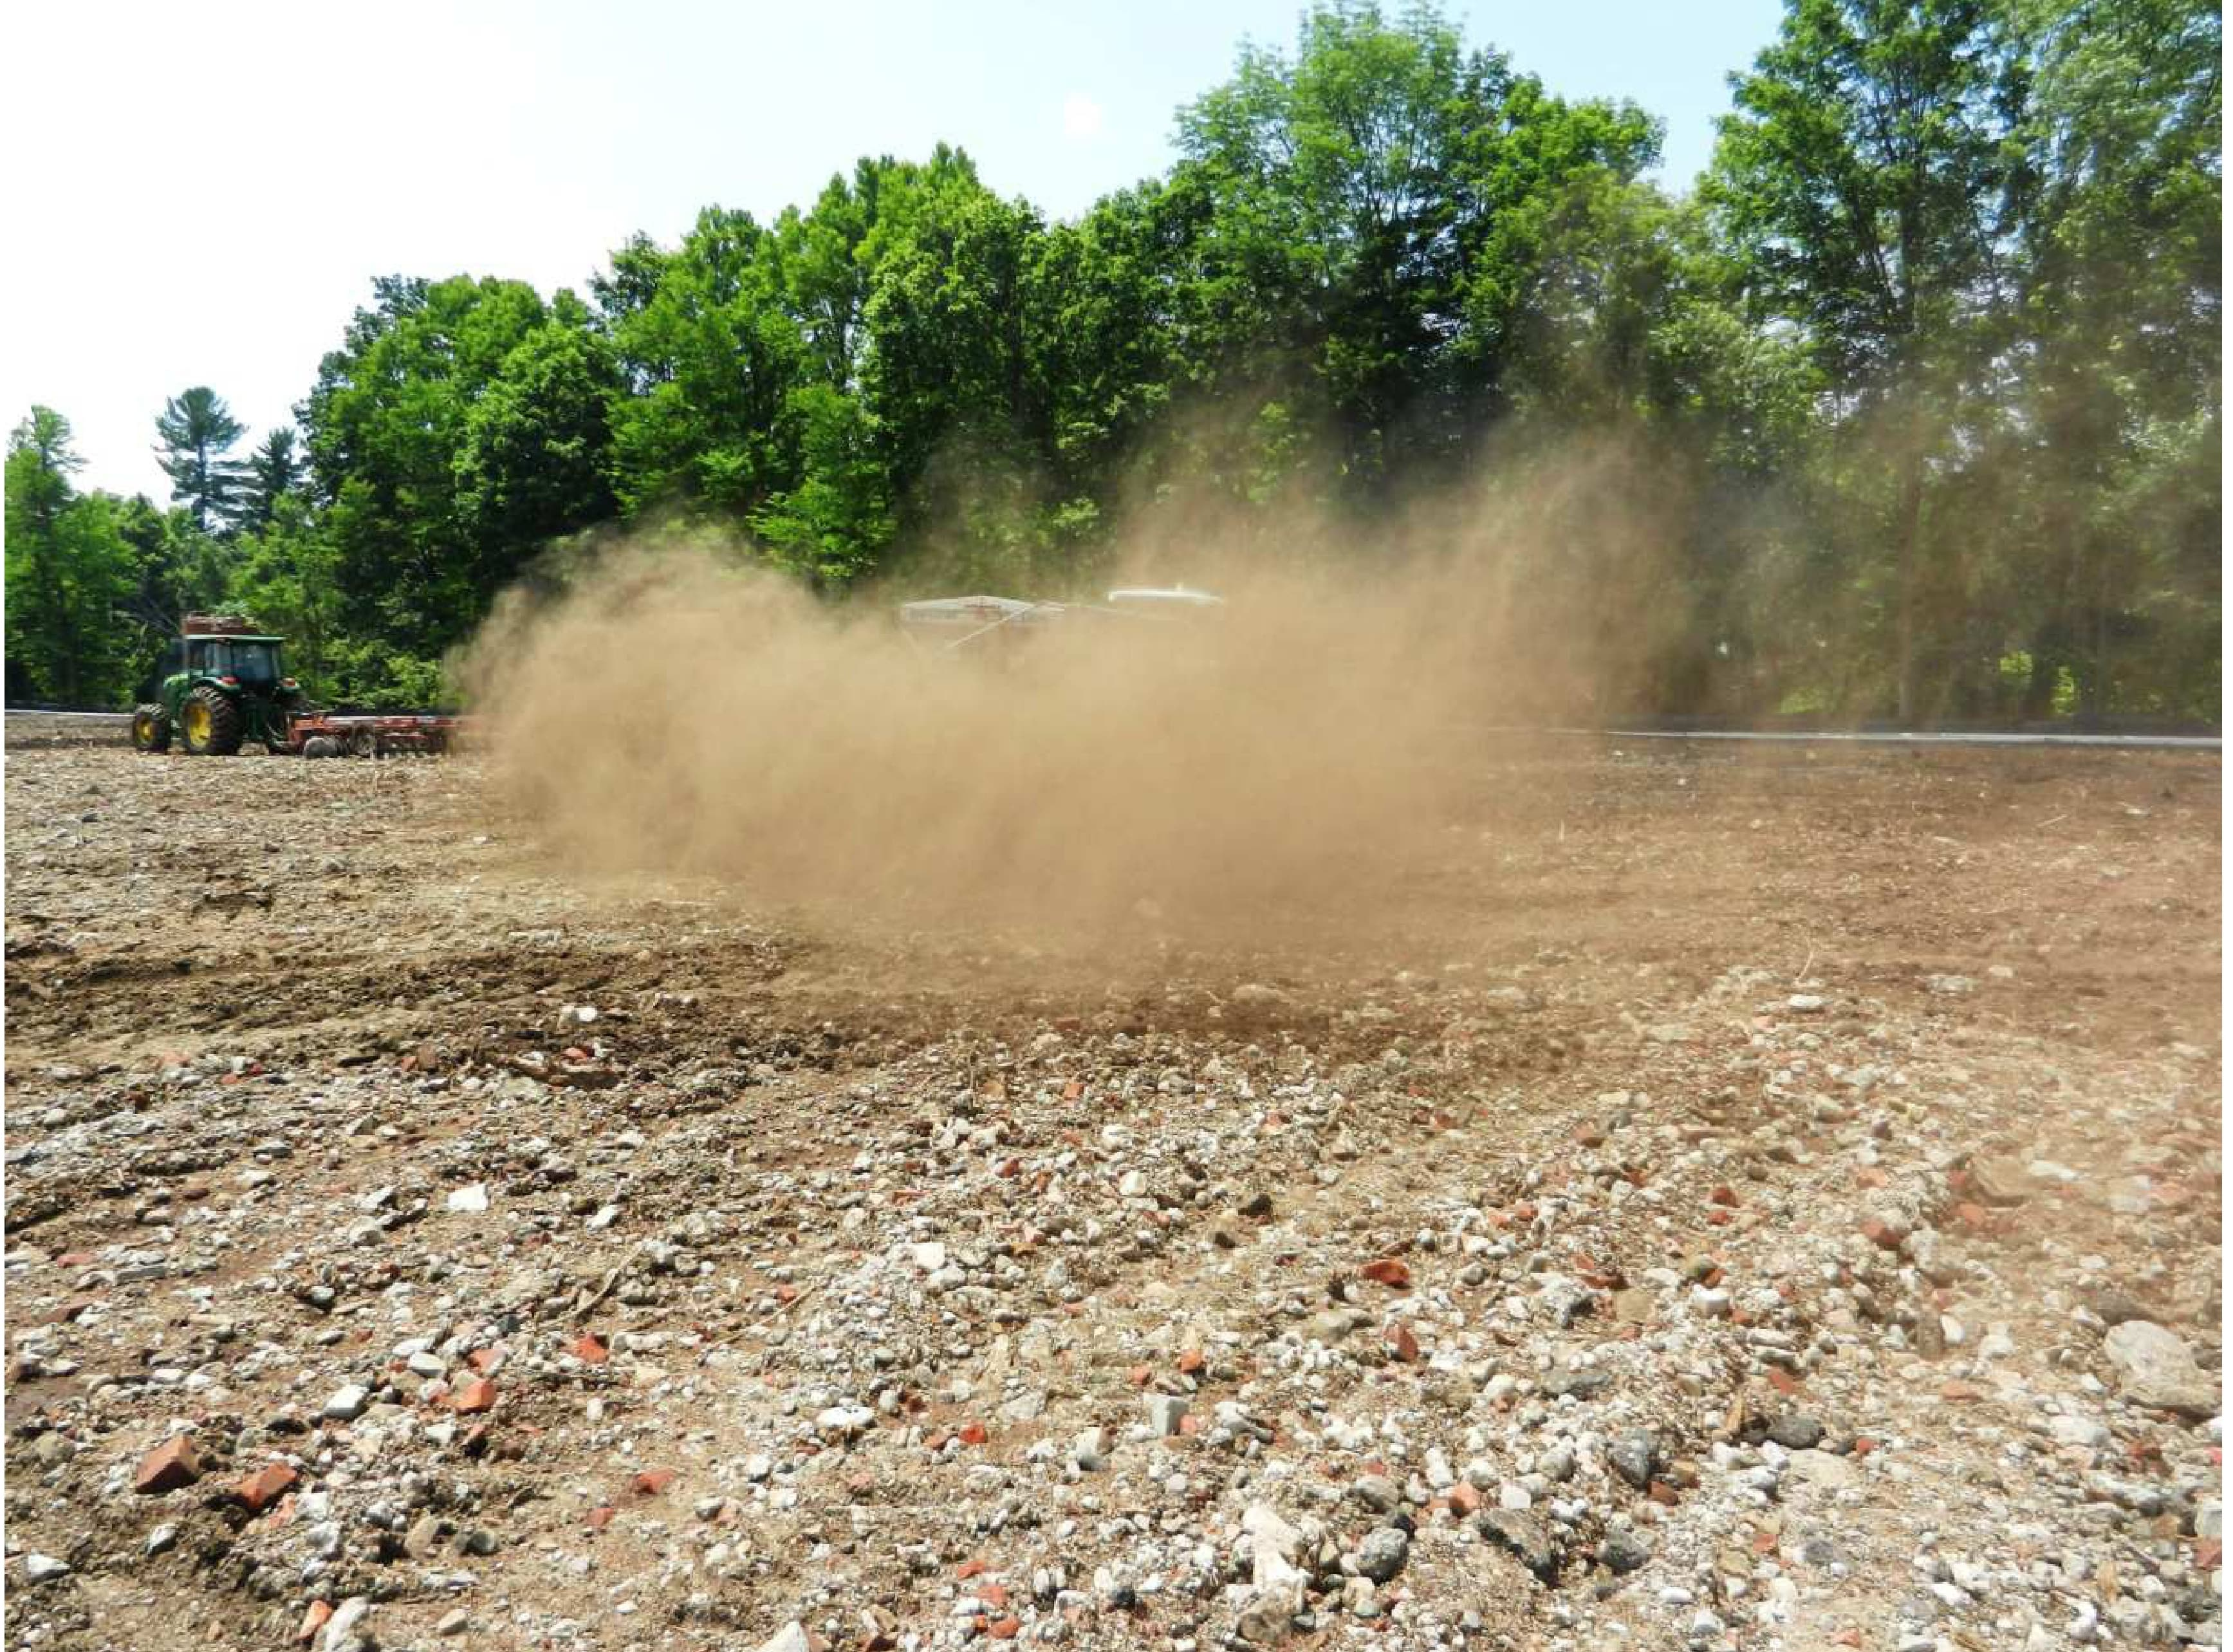 A cloud of factor dust follows the application of the bioremediation material when it was applied in July.